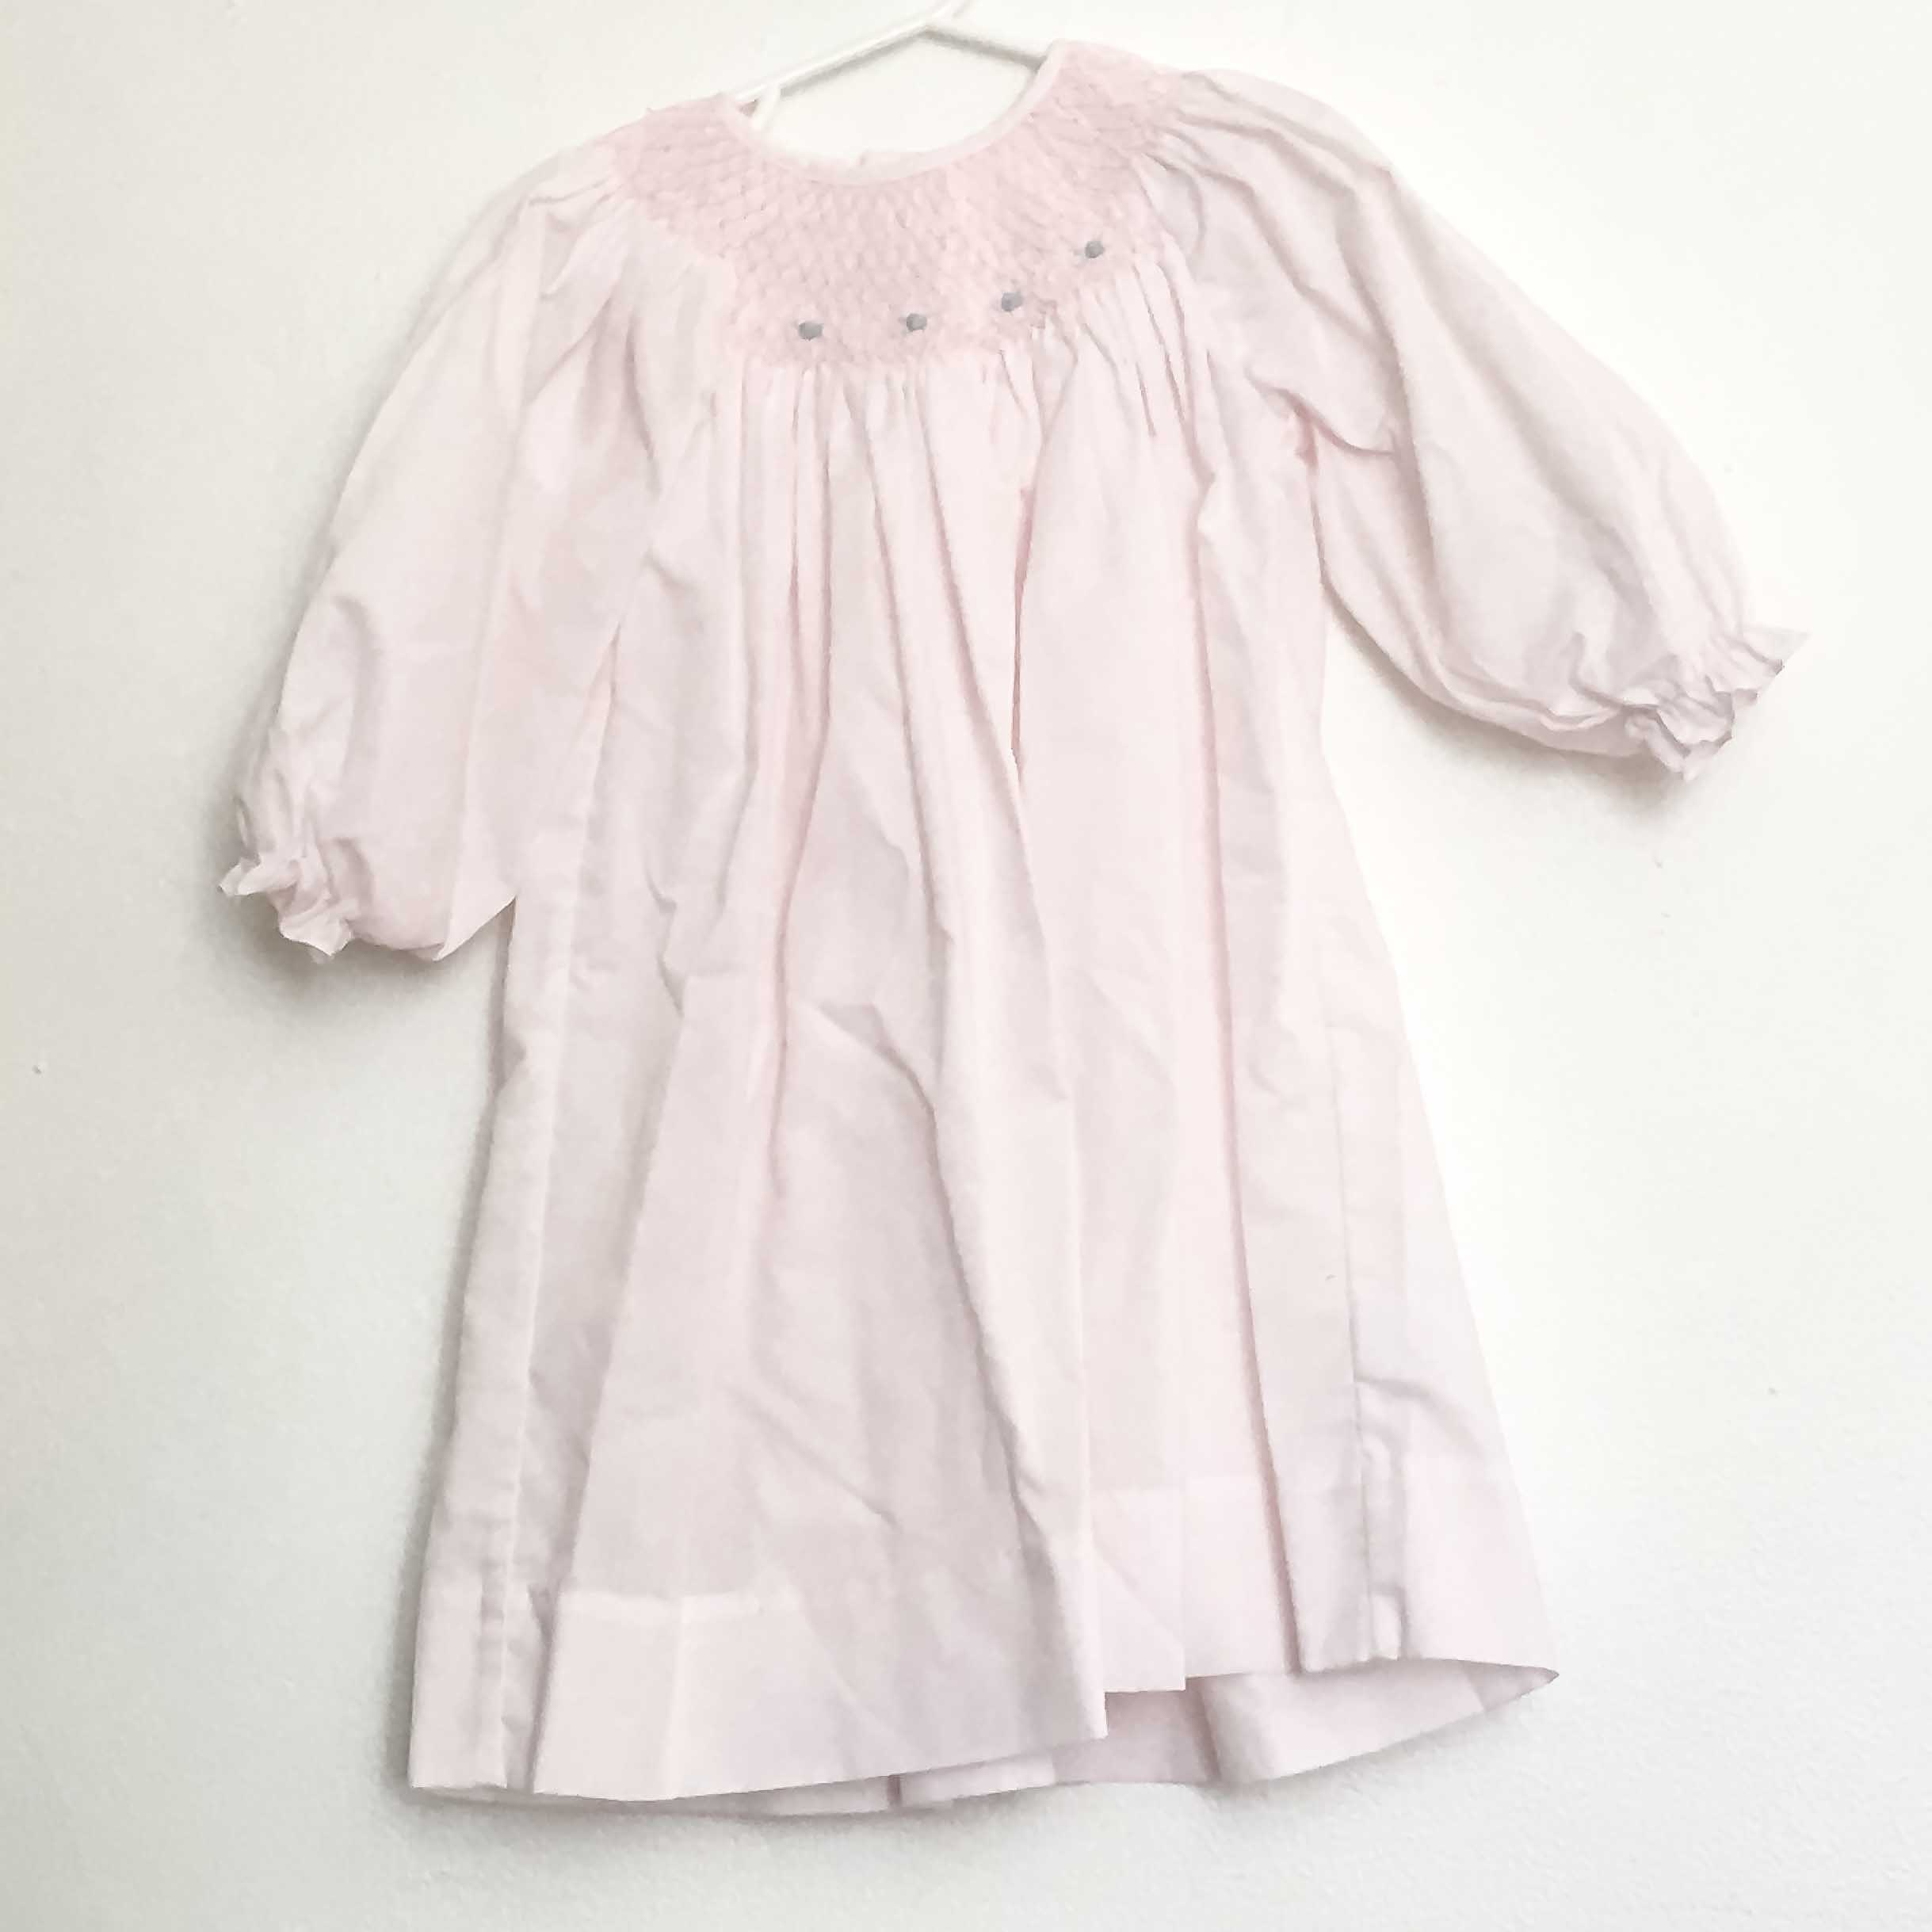 ORPCLOTHES-28.jpg